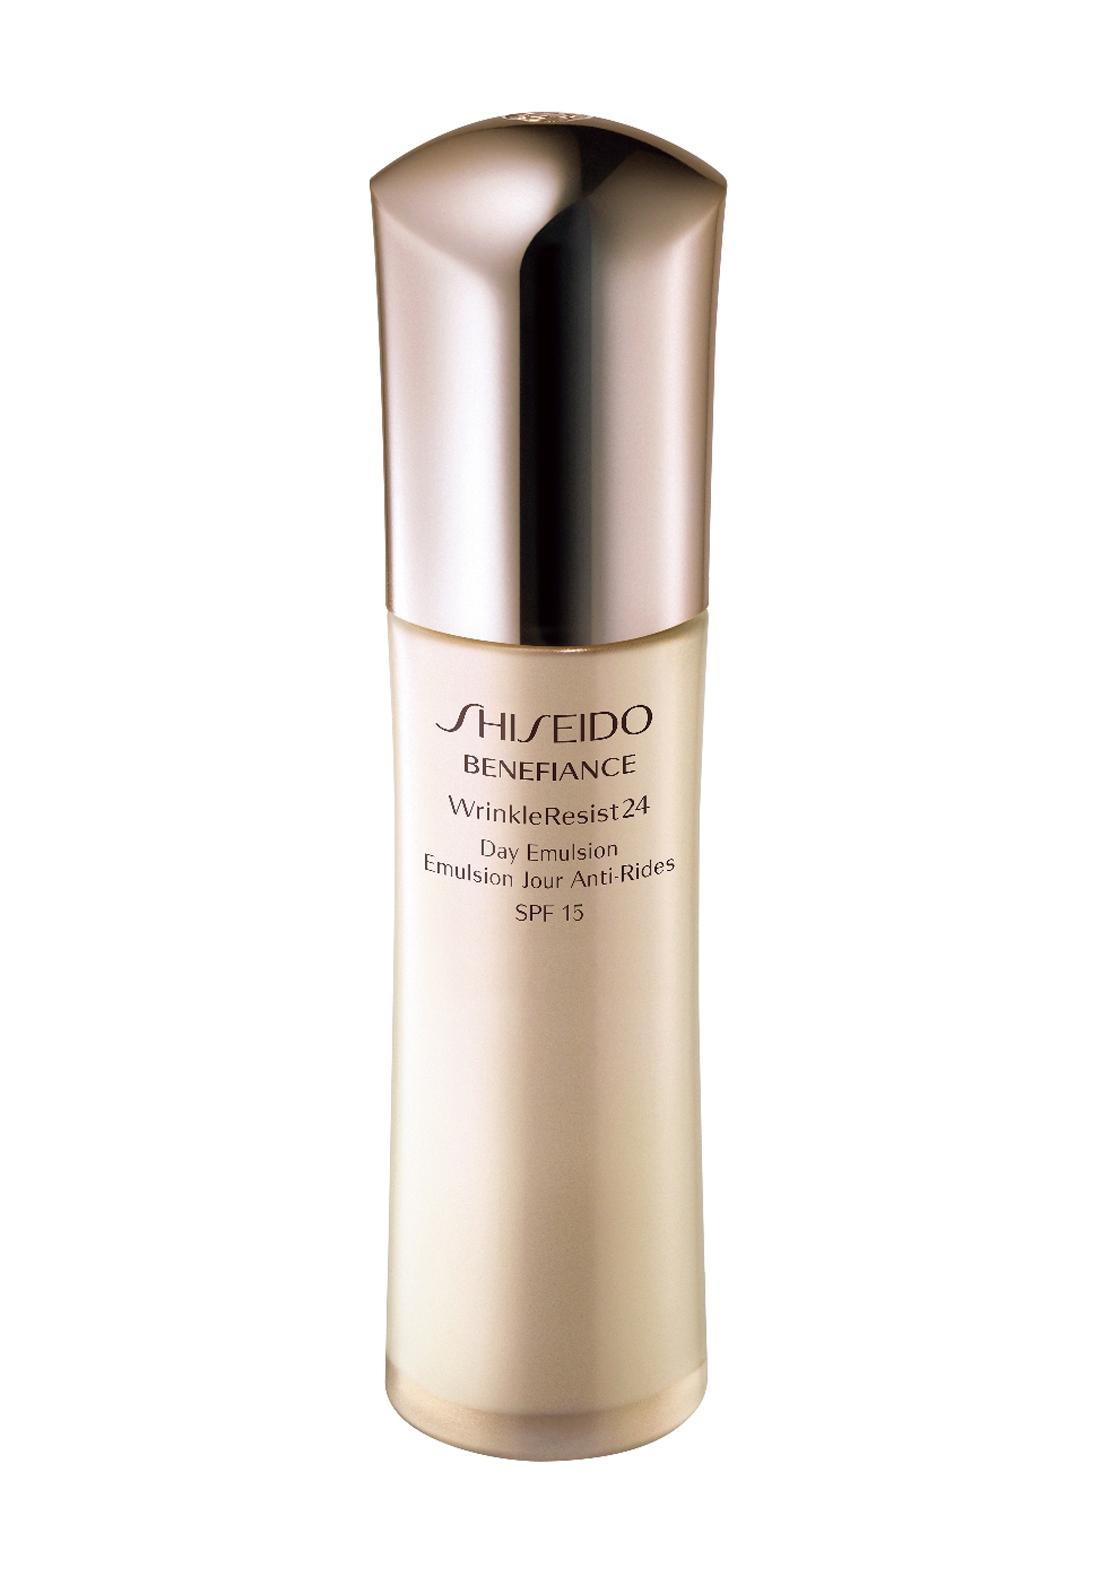 Shiseido Benefiance Wrinkle Resist24 Day Emulsion SPF 15 (75ml)